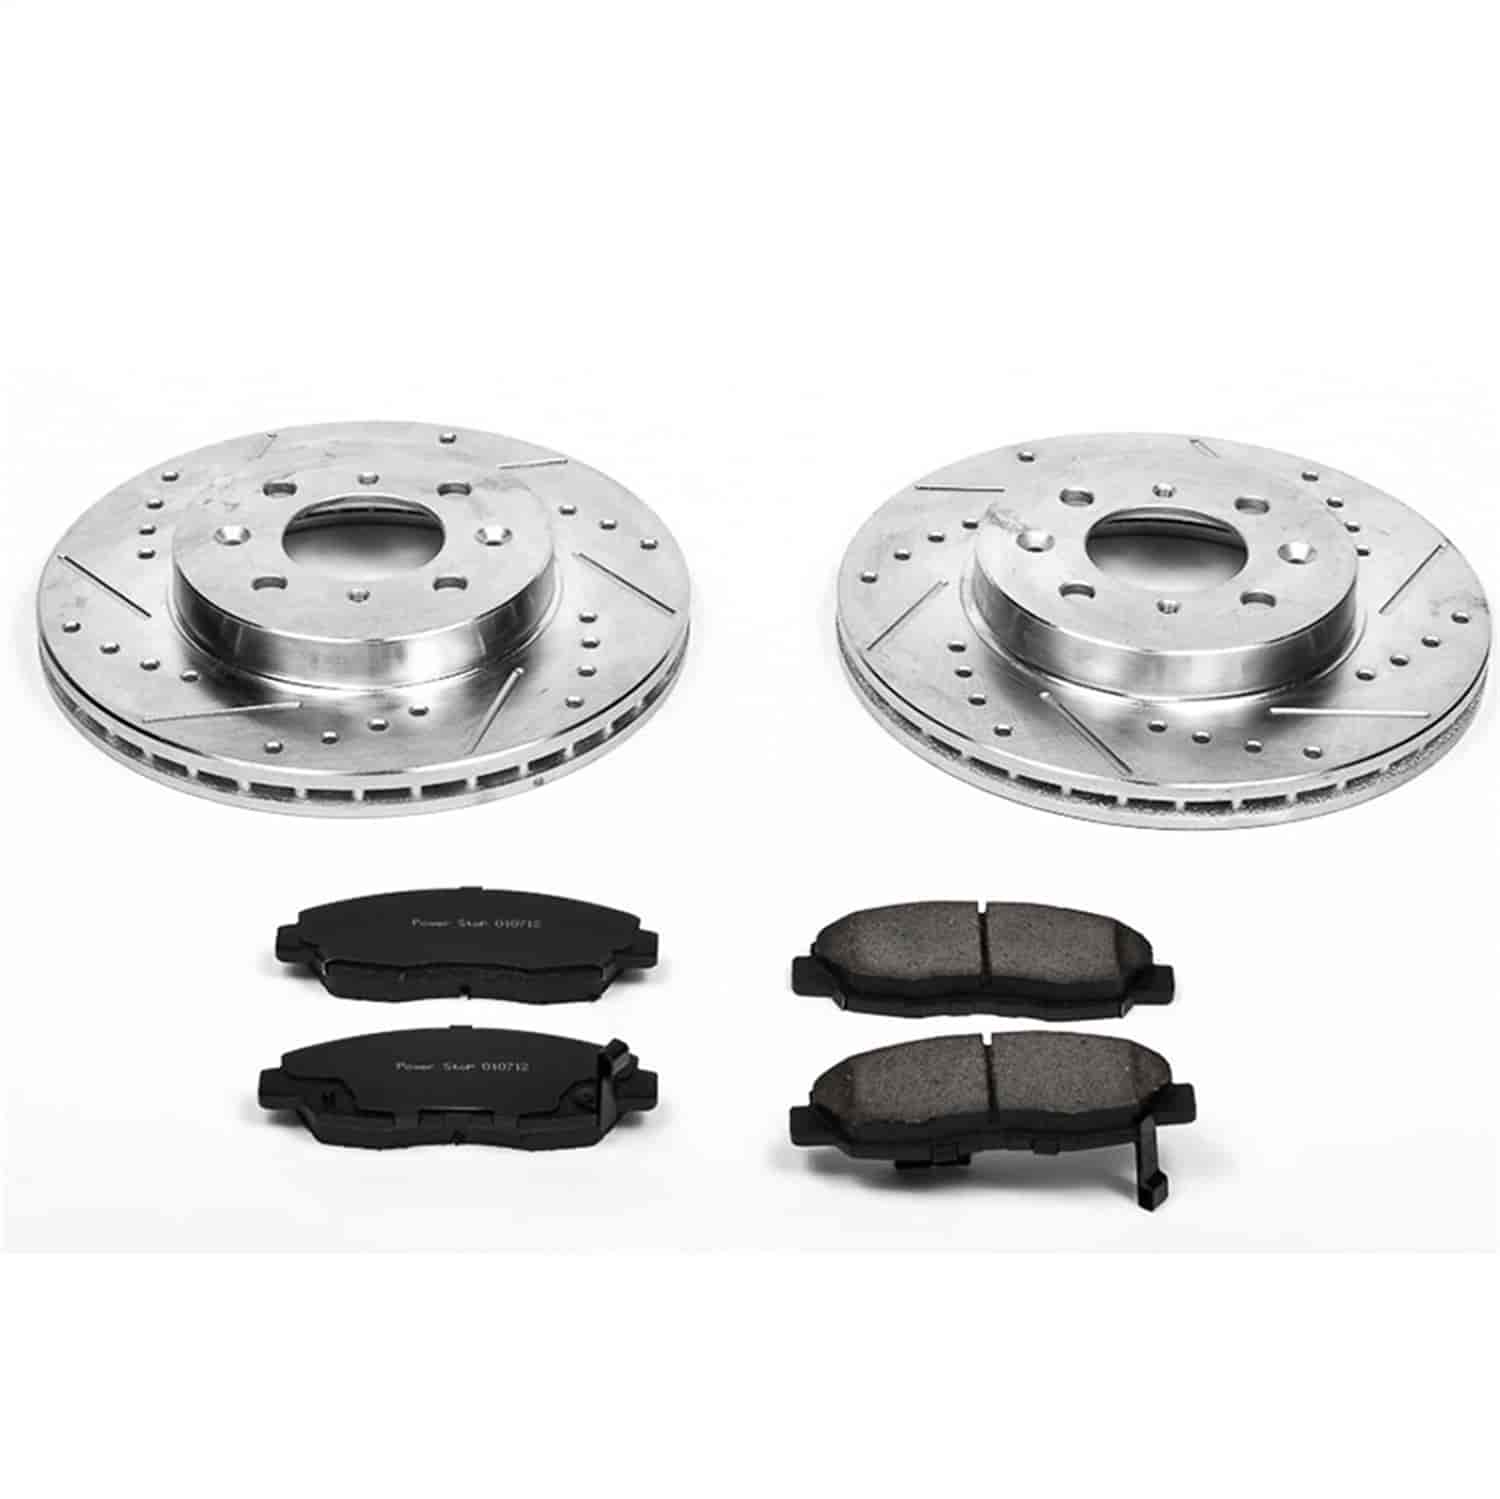 2008 2009 For Honda Civic DX//EX//LX//Hyb Coated Drilled Slotted Front Rotors